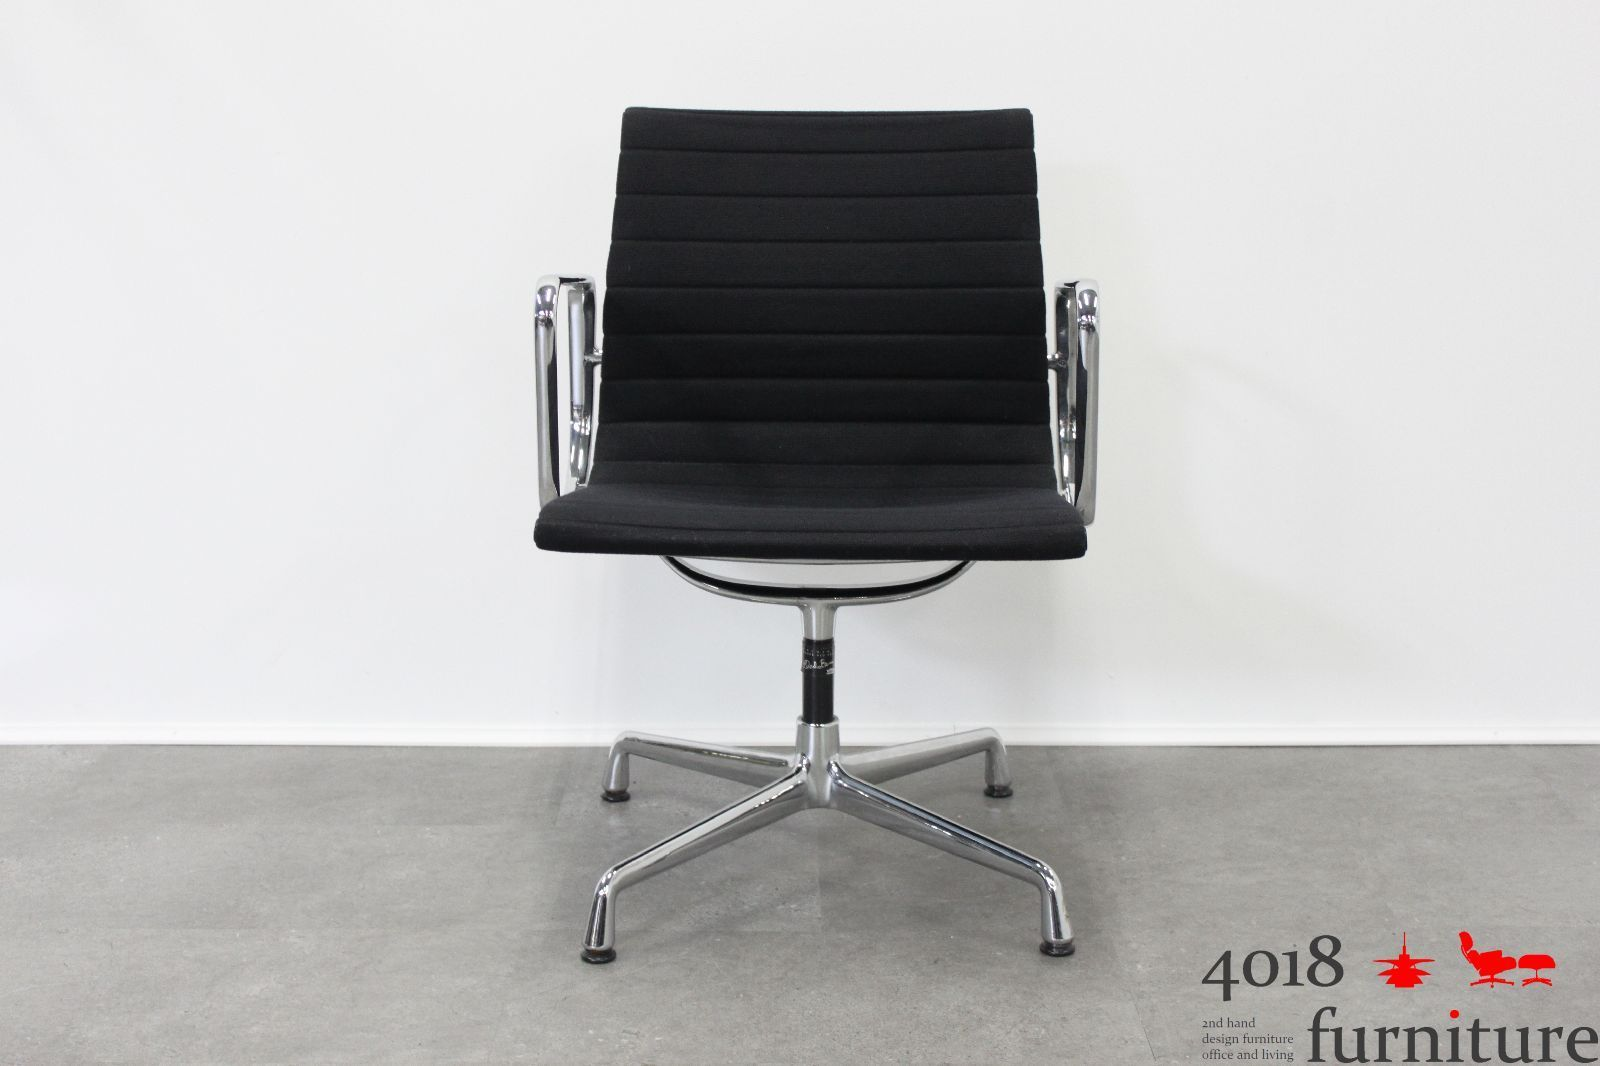 vitra eames ea 108 hopsak schwarz alu chair office besucherstuhl. Black Bedroom Furniture Sets. Home Design Ideas